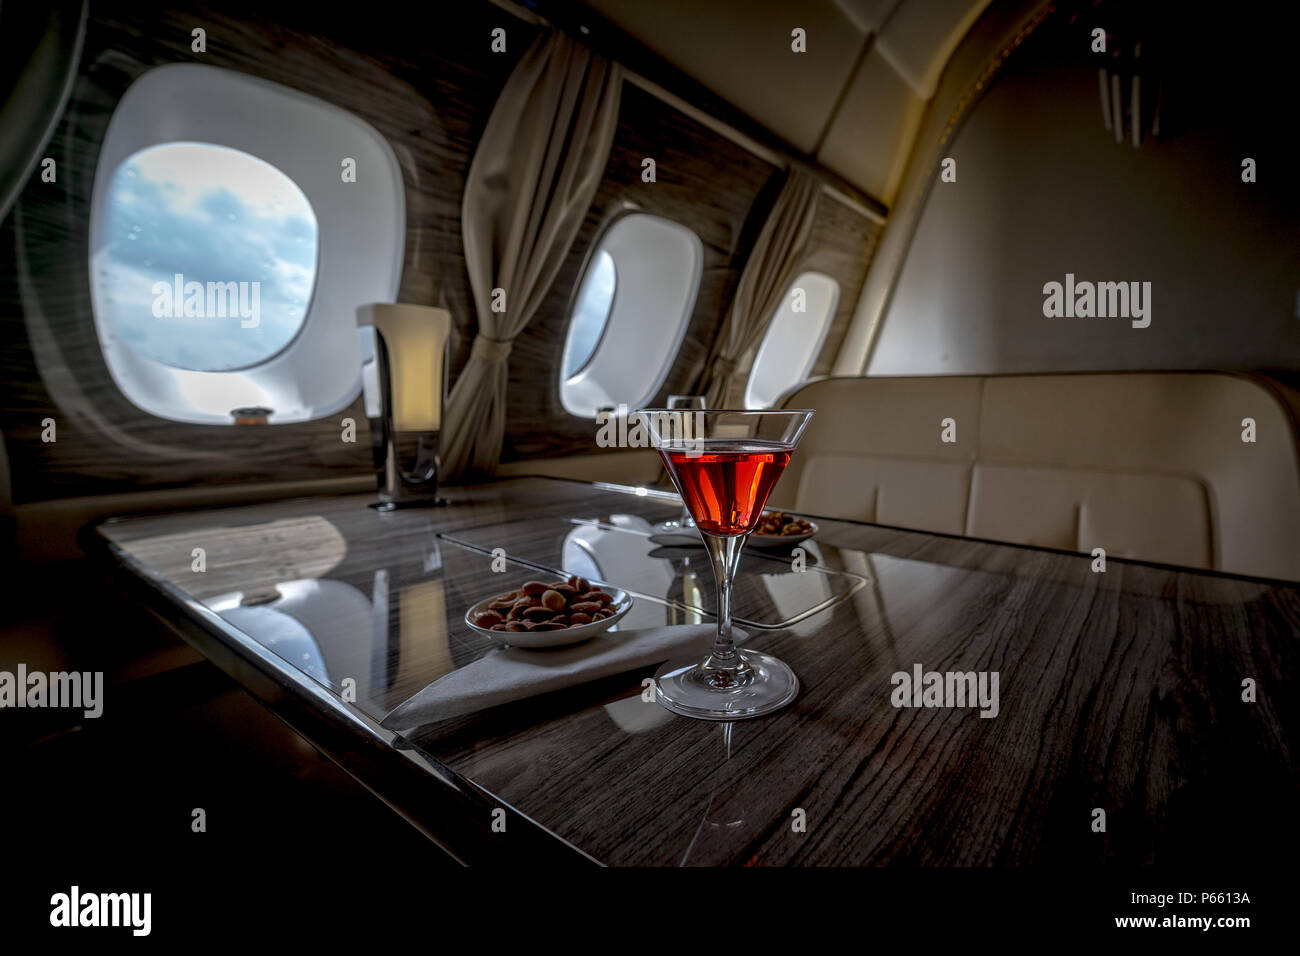 Interior of a business class of a commercial passenger plane, an armchair and a window, a table and a cocktail glass with a drink and almonds. - Stock Image